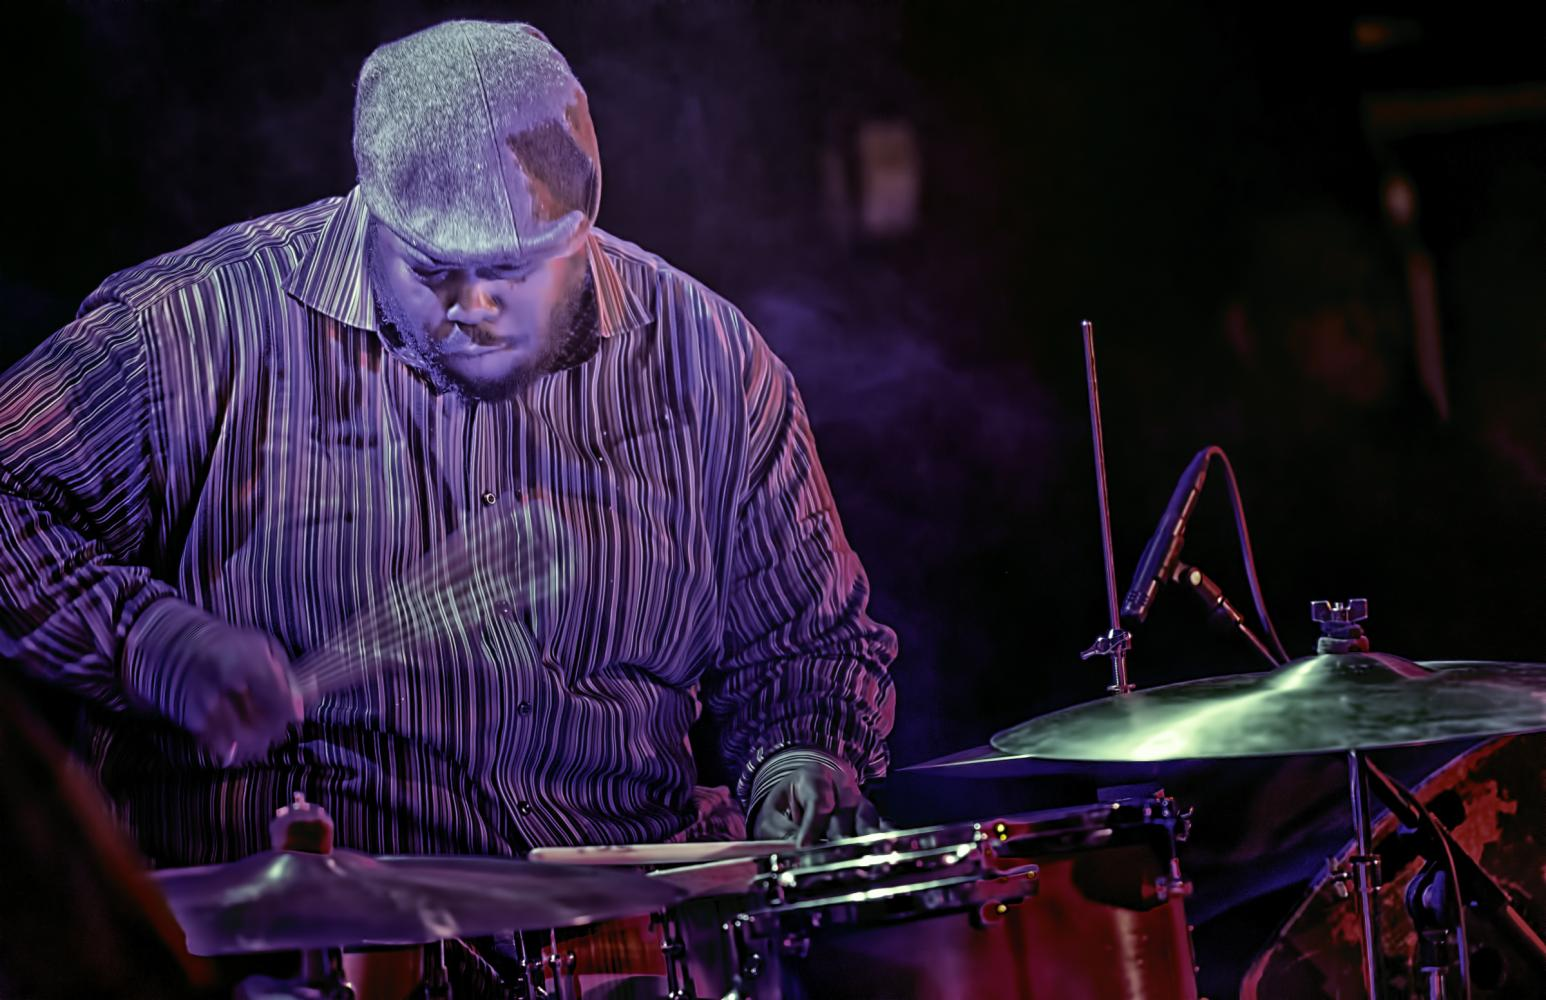 Johnathan Blake with the Pharoah Sanders Quartet at The NYC Winter Jazzfest 2017